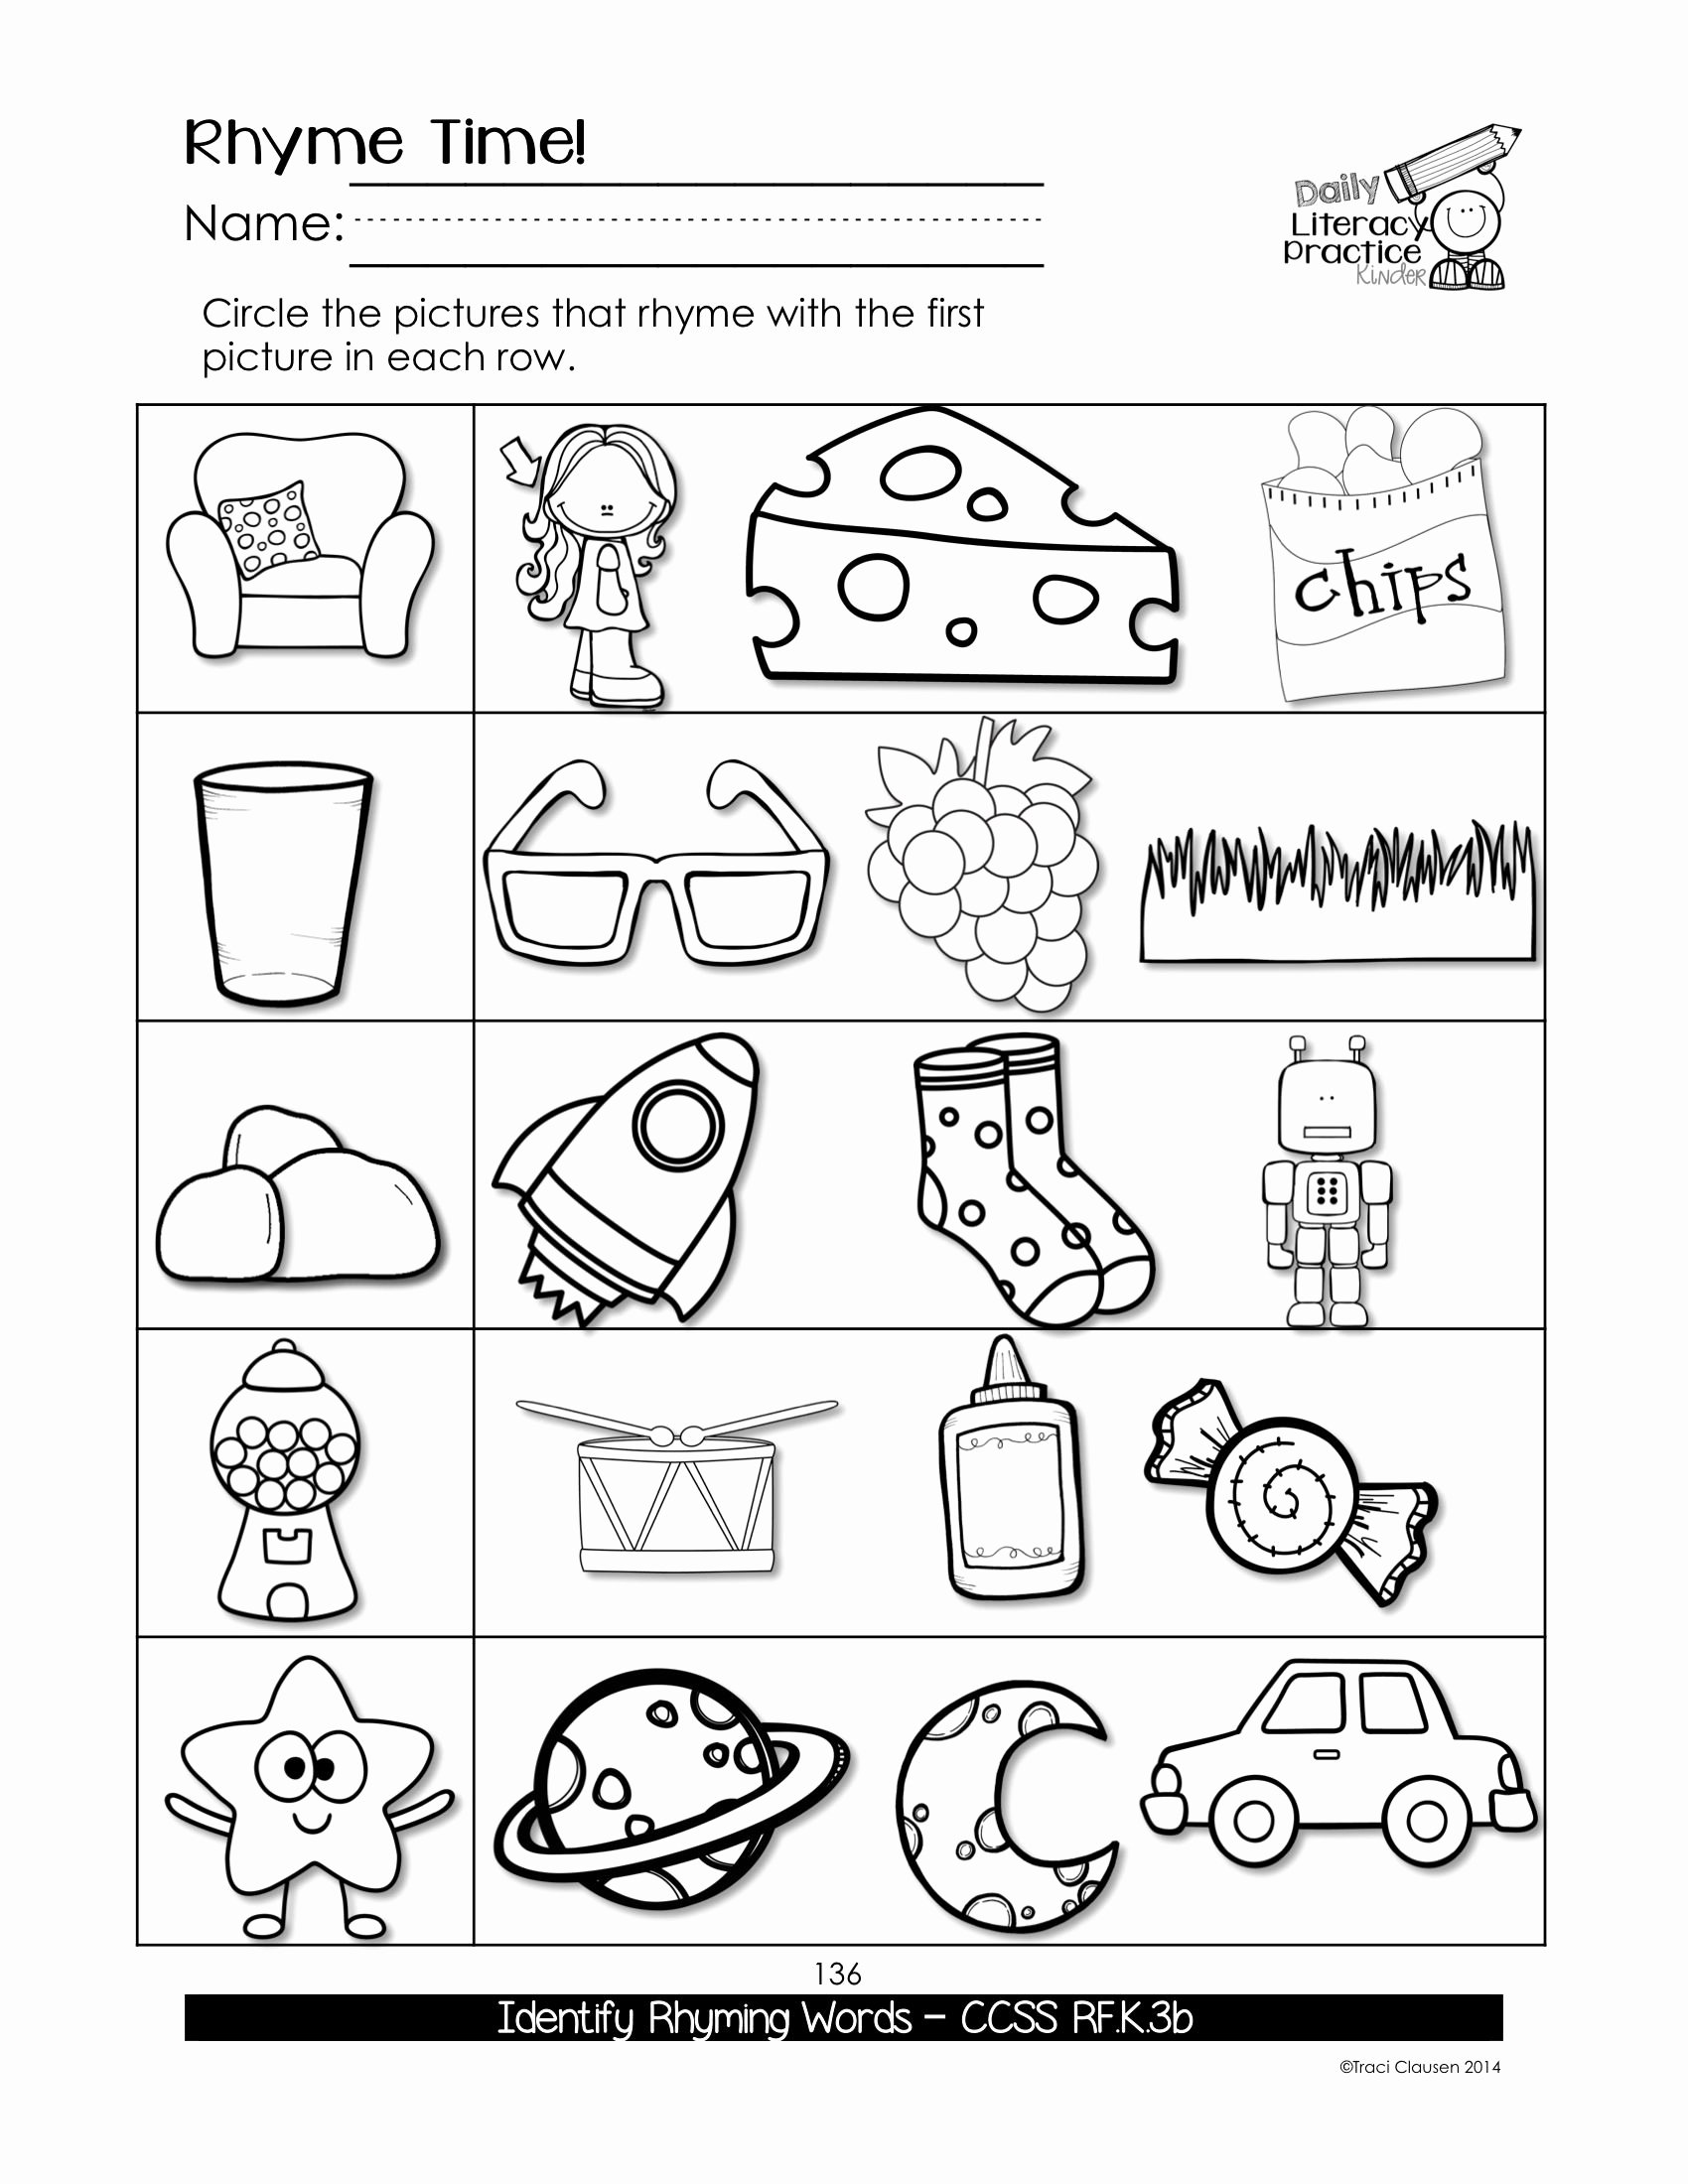 Free Rhyming Worksheets for Kindergarten Printable Worksheets Kindergarten Phonics Sight Words Practice Daily